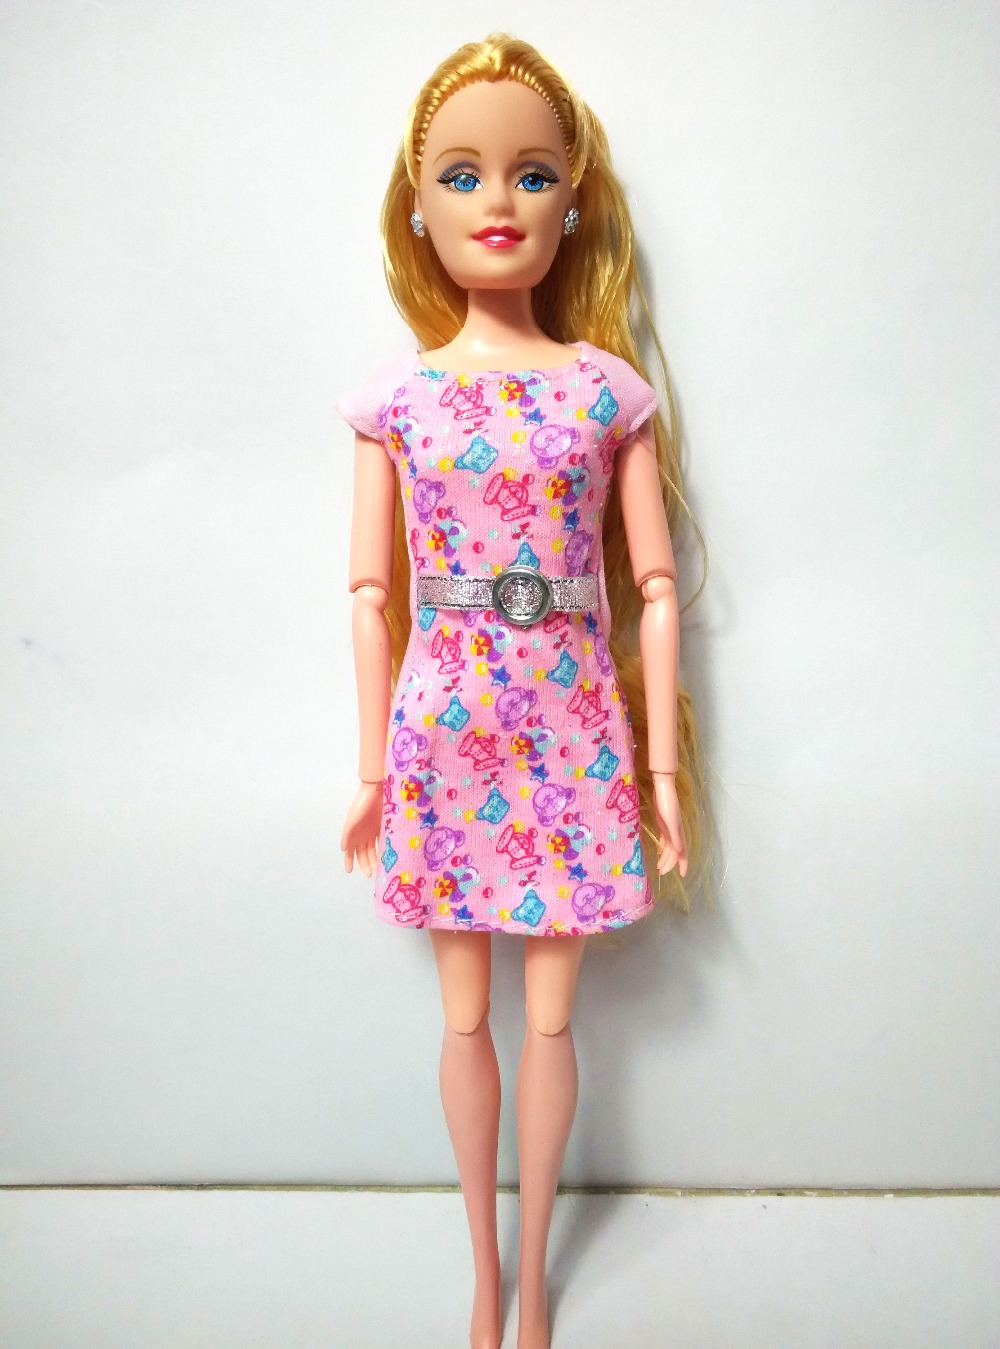 Authentic For Barbie Dolls pink Speckl O118 Gown Garments Get together Robe Informal wears 2016